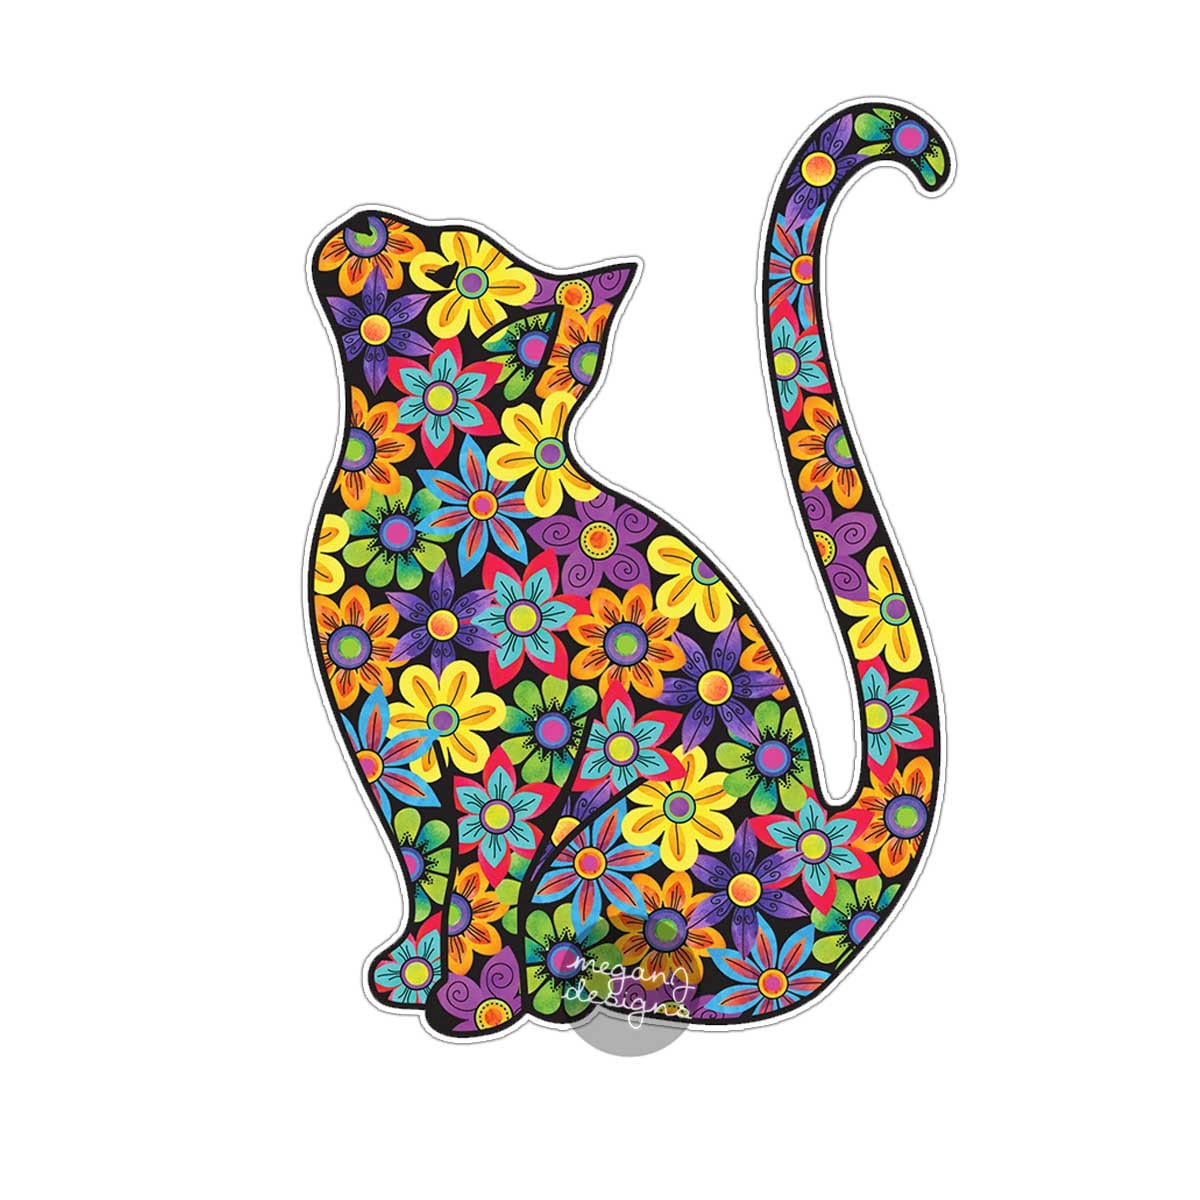 Animal Wall Sticker Cat Sticker Car Decal Laptop Decal Bumper Sticker Colorful